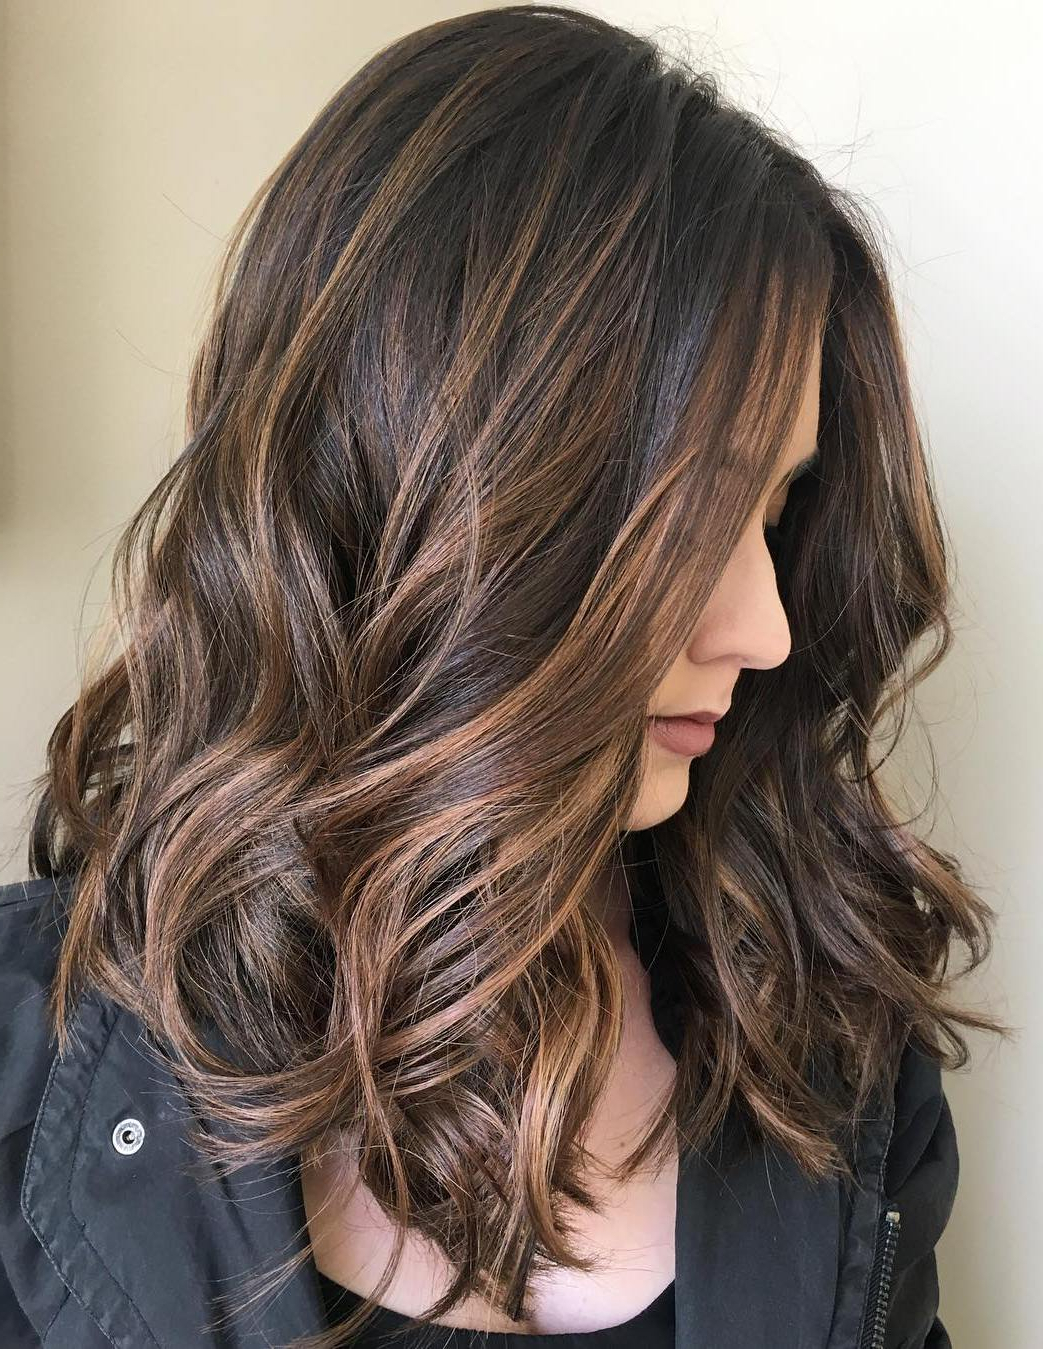 70 Balayage Hair Color Ideas With Blonde, Brown And Caramel Highlights With Curly Dark Brown Bob Hairstyles With Partial Balayage (View 15 of 20)